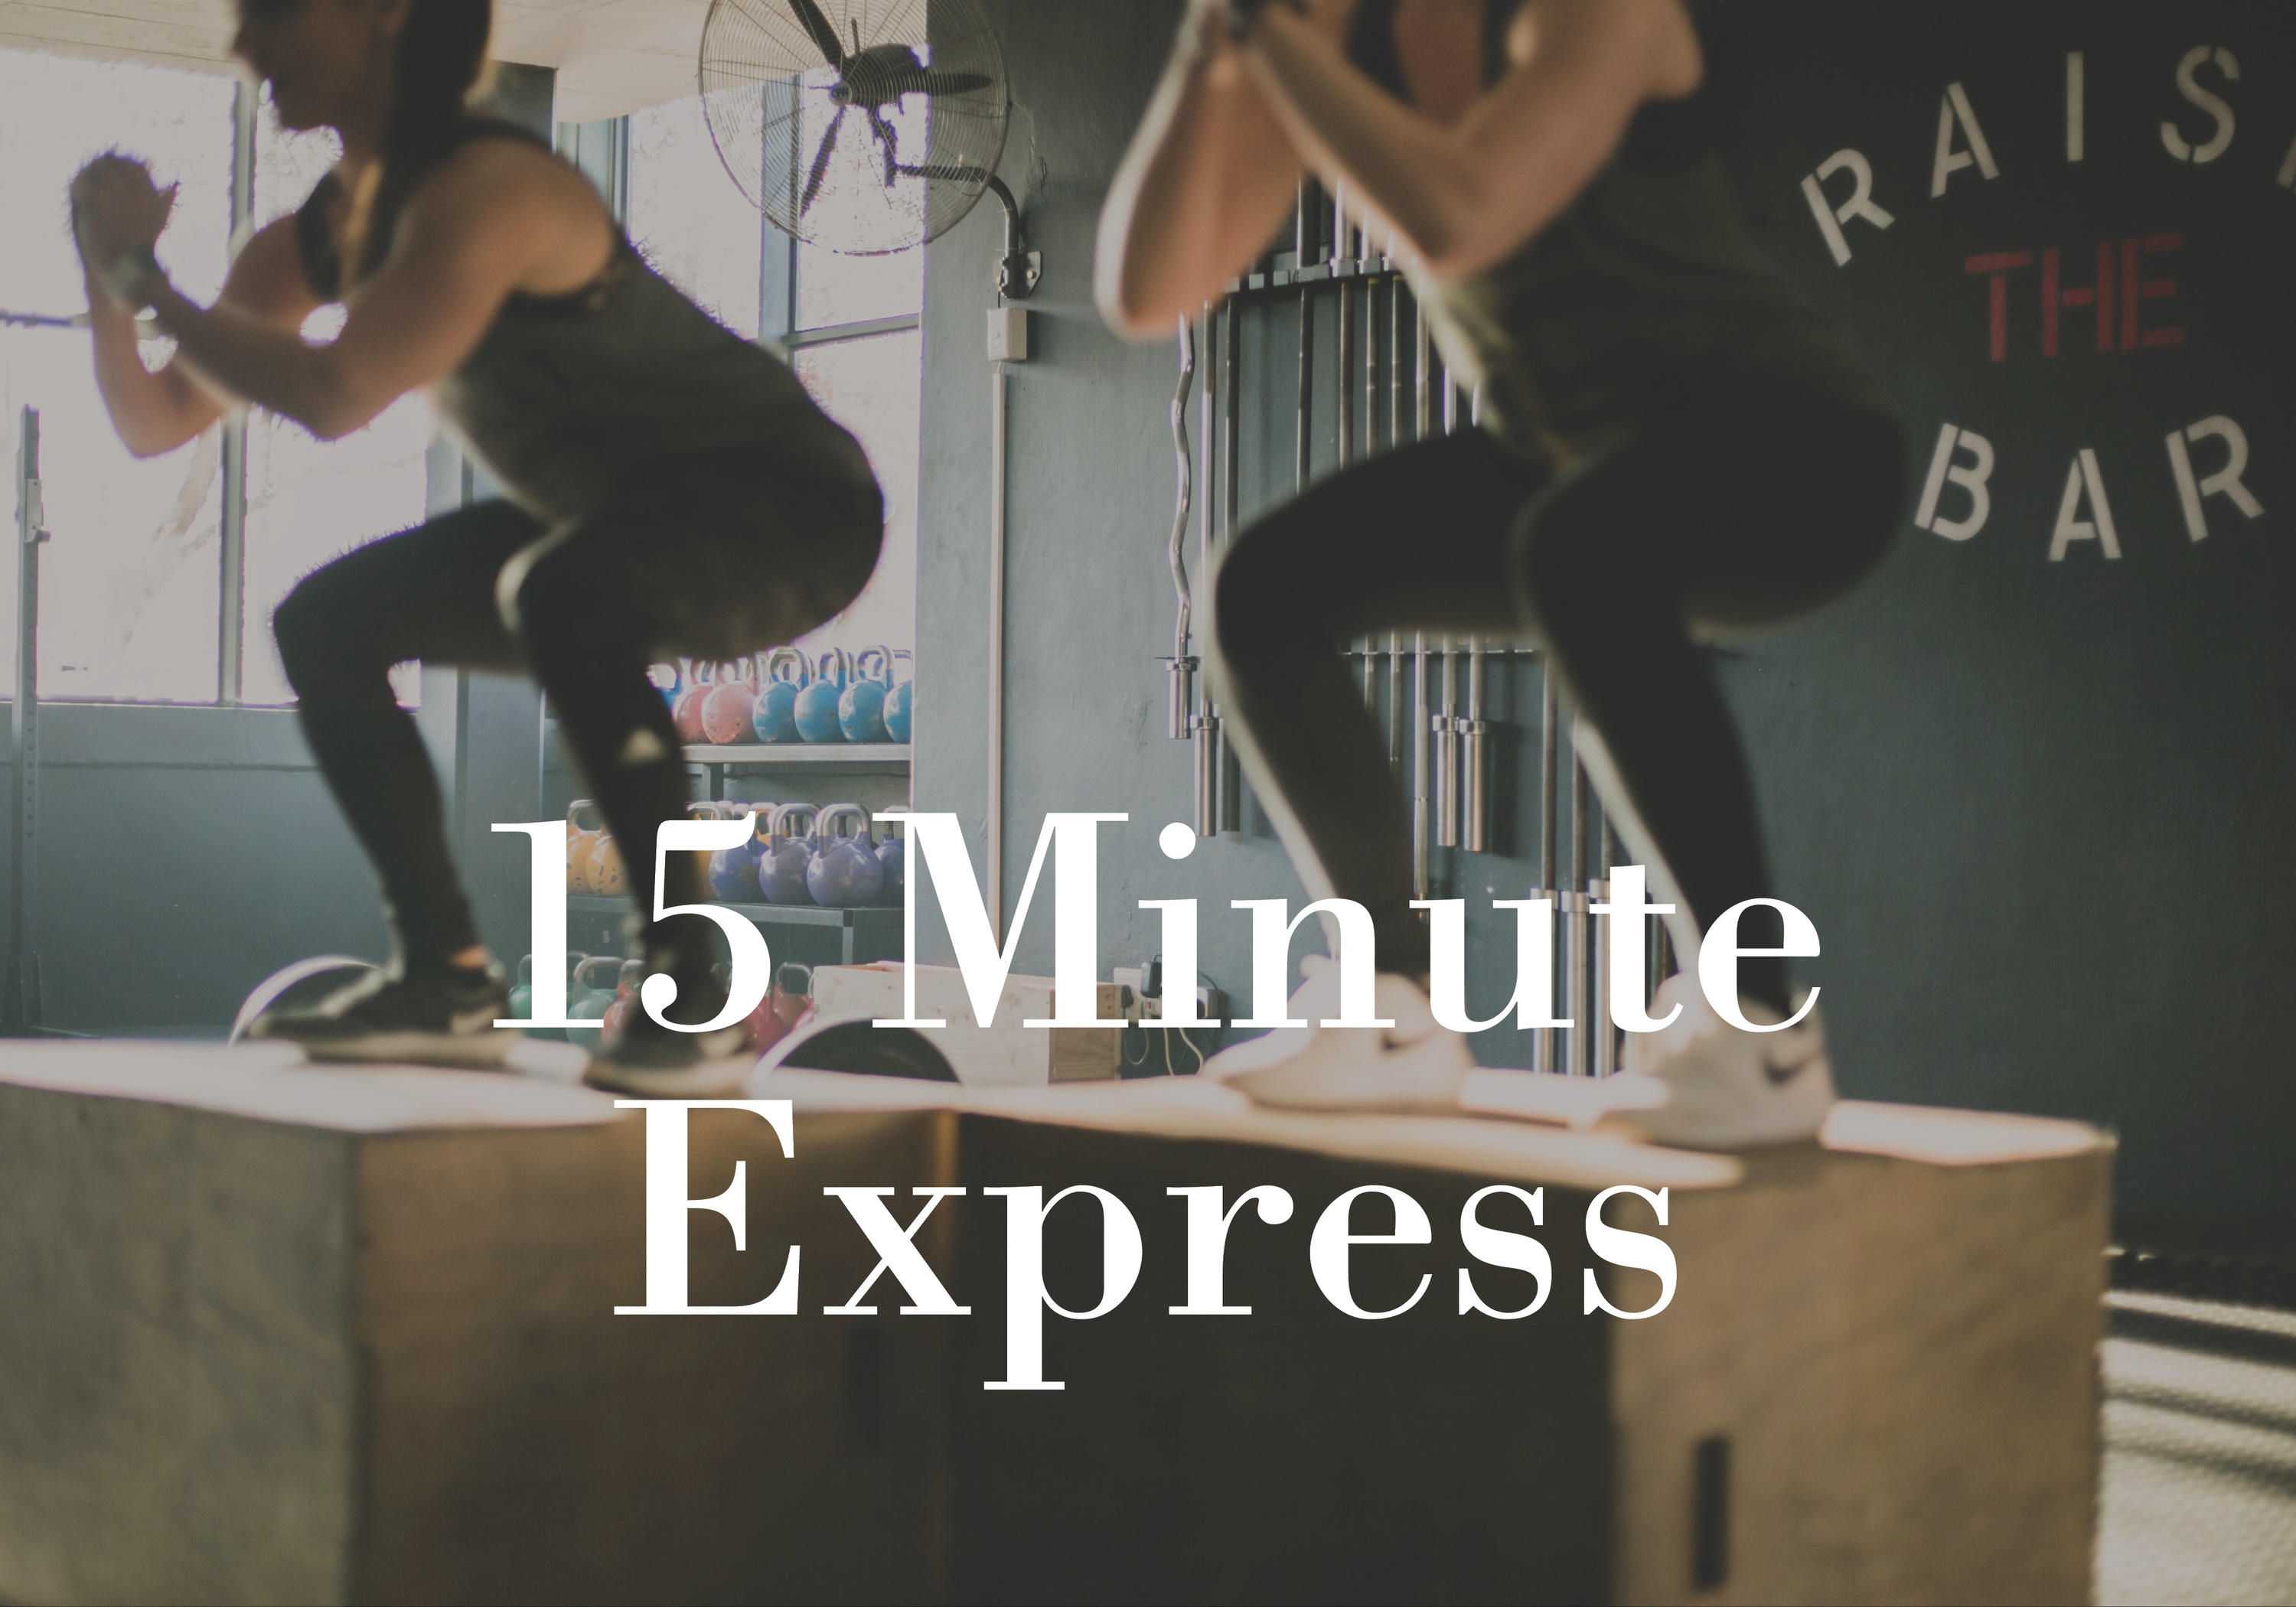 FC Virtual Field House Pop Up |  15 Minute Express with Jayel (Instagram Live)